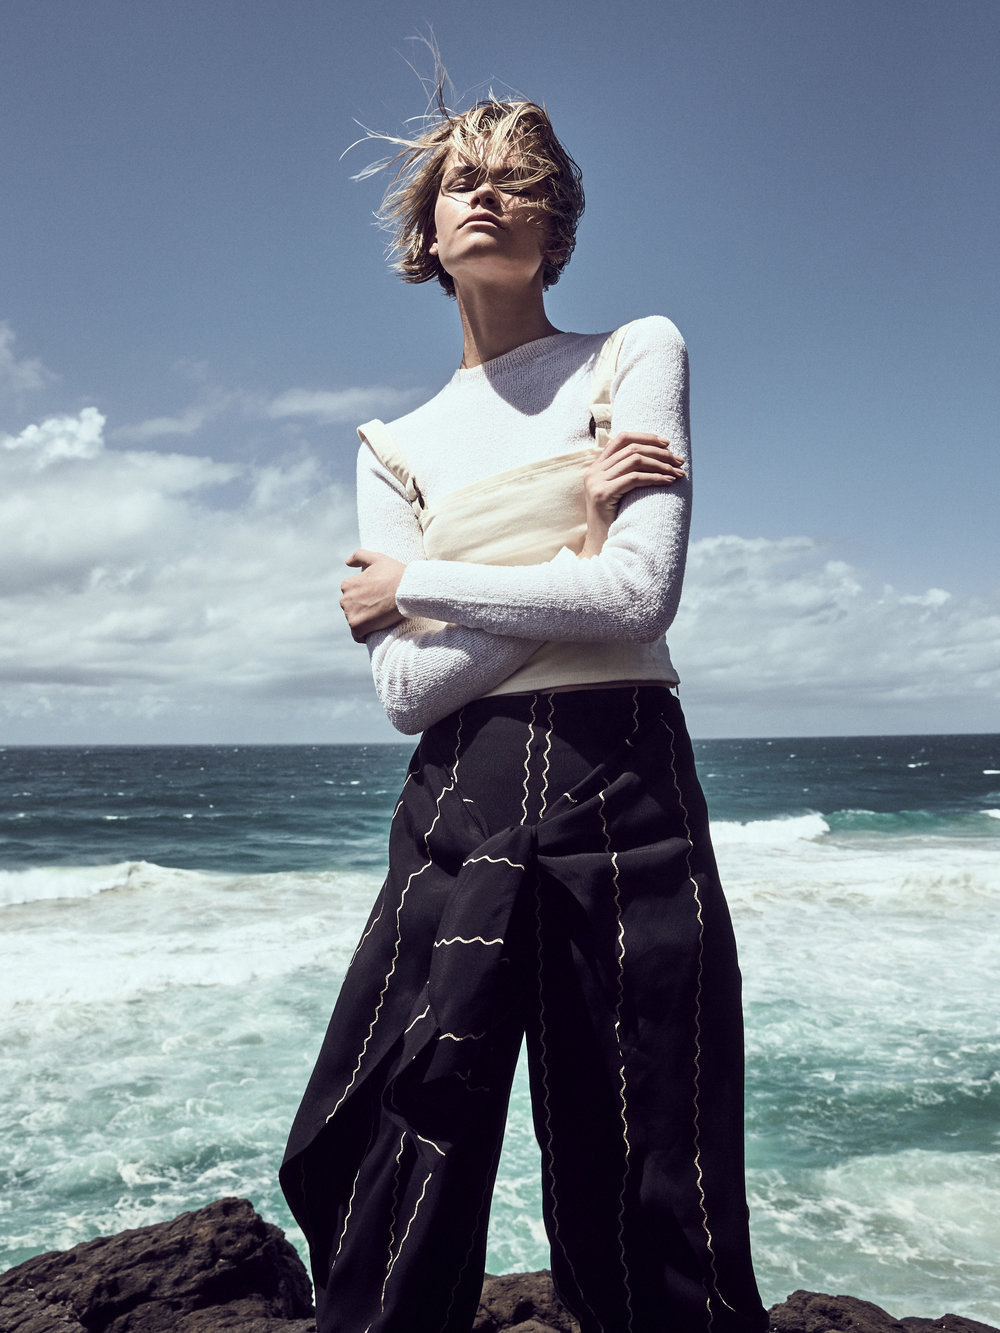 Top |  Zulu & Zephyr , Corset Top |  Yoli & Otis , Trousers |  Sass & Bide